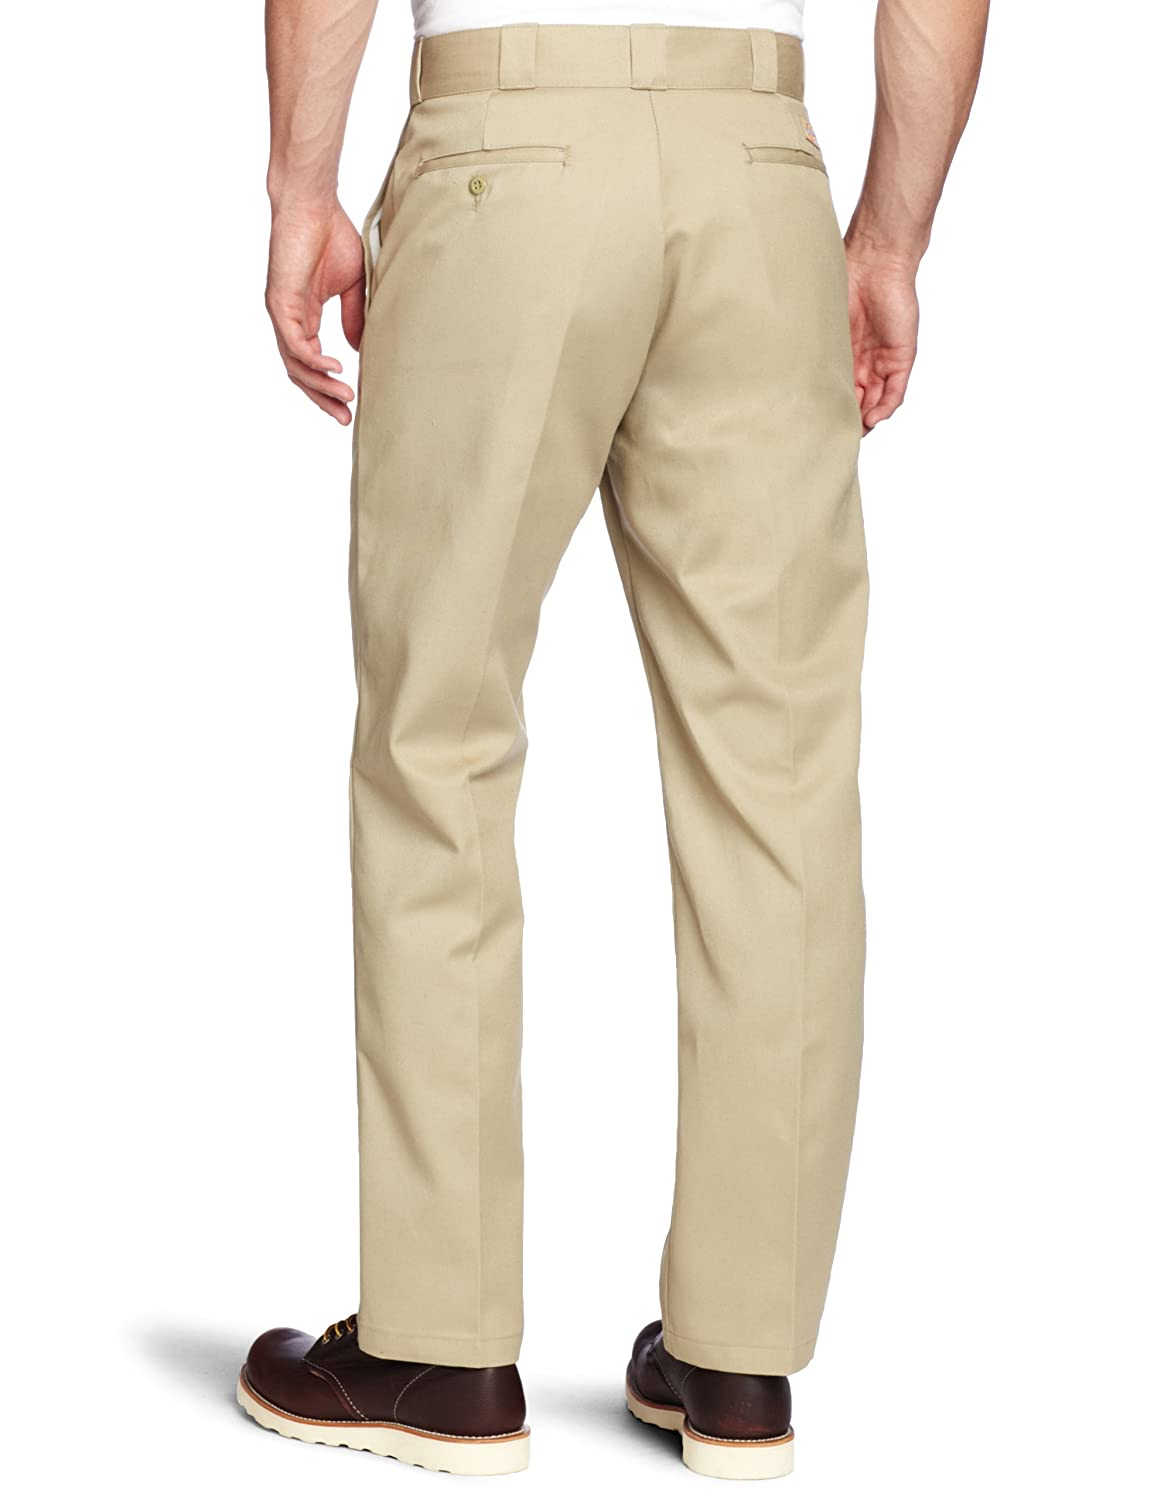 c04c044cd09 Amazon.com  Dickies Work Clothes  Men s Stain Release Khaki Work Pants  874KH - 46x30  Clothing